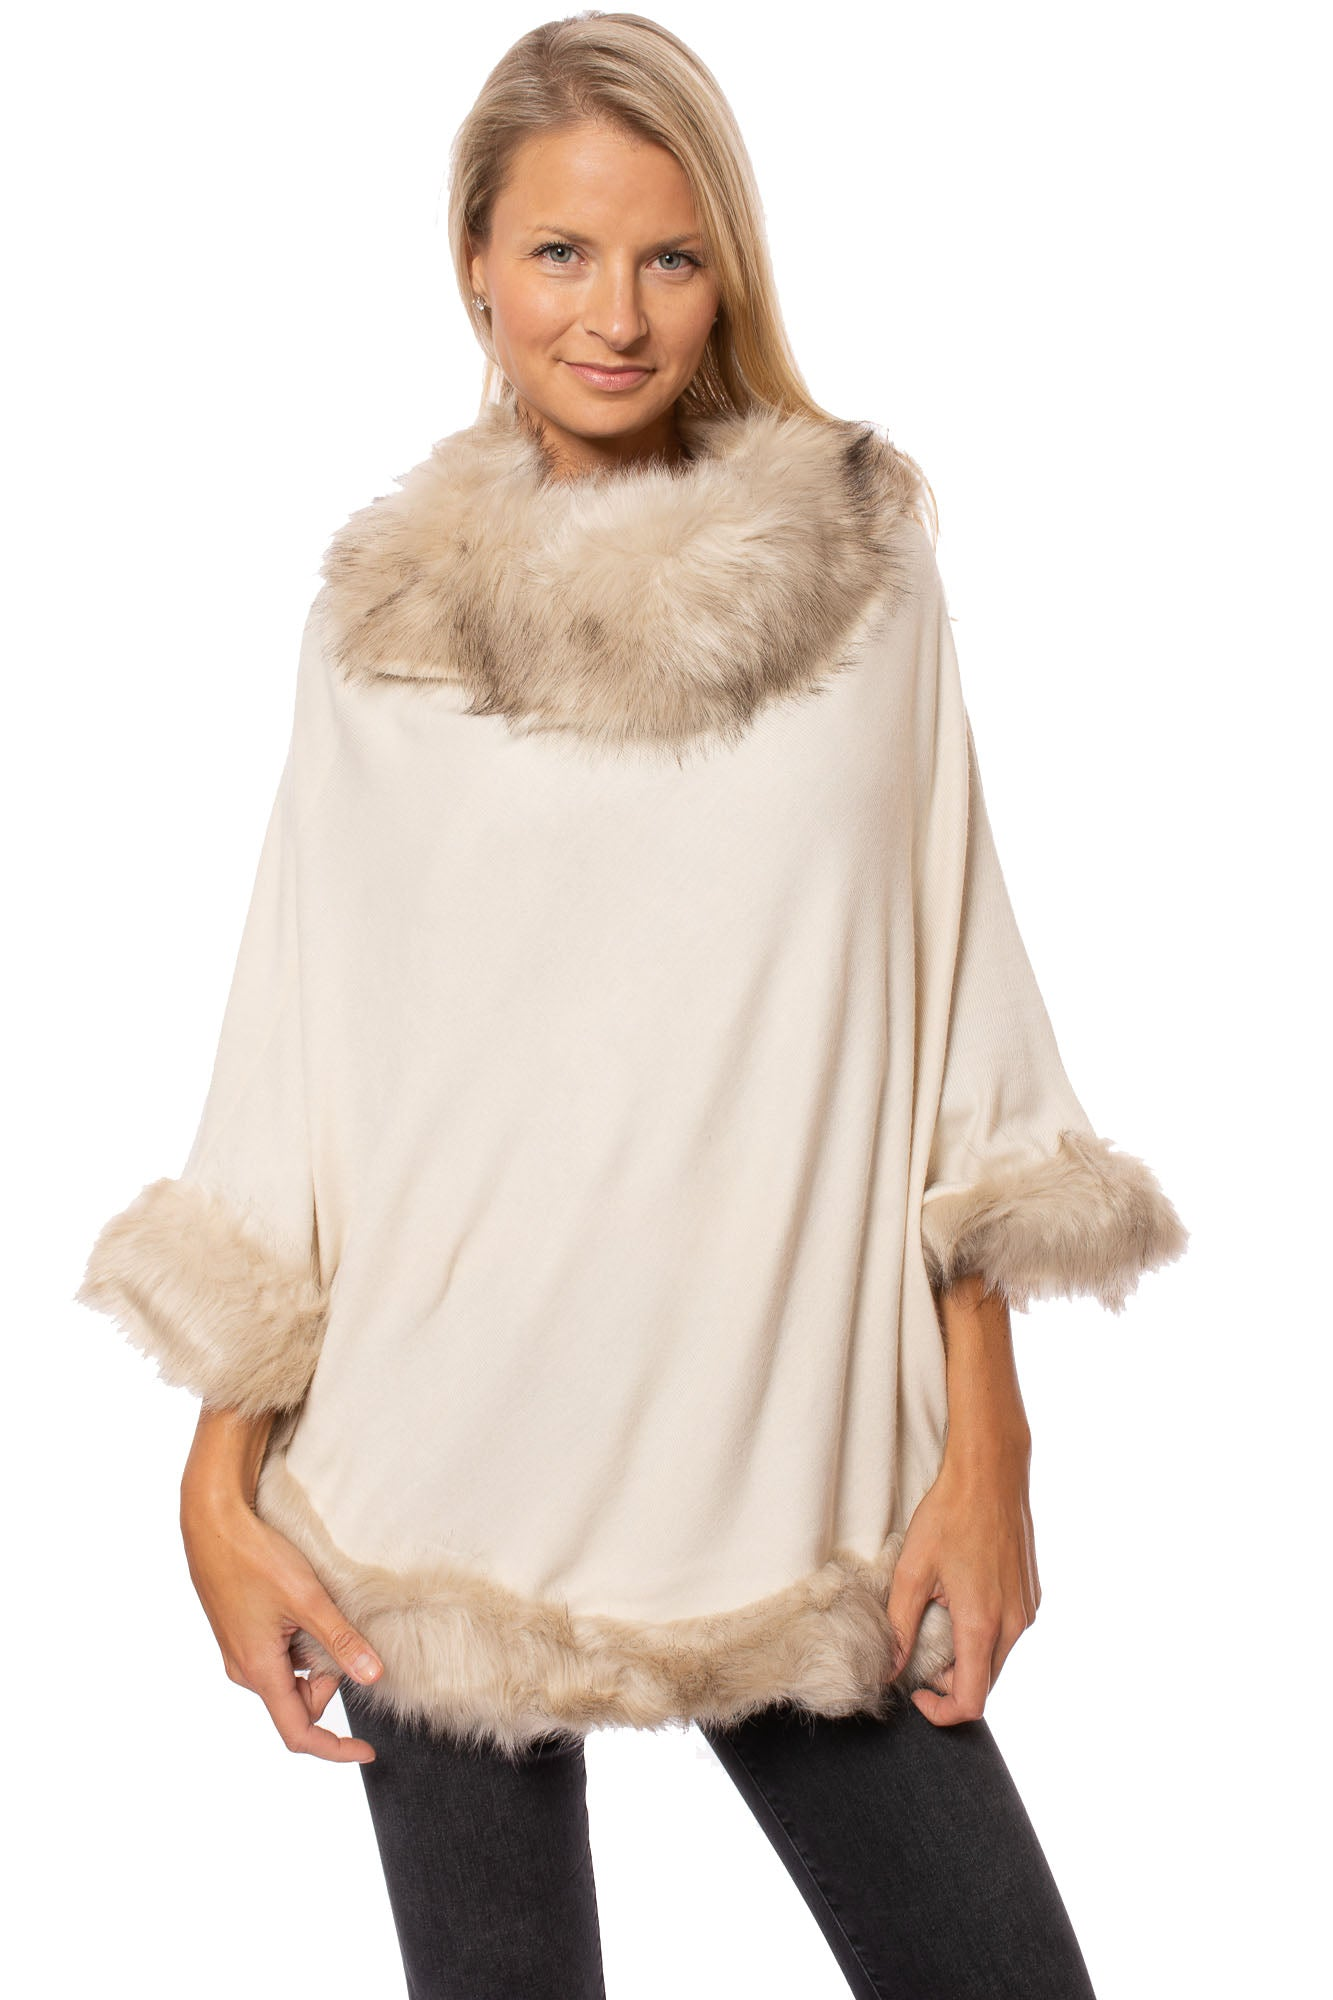 Pia Rossini - Ambrosia  Poncho W/Faux Fur (AMBROSIA, Honey)